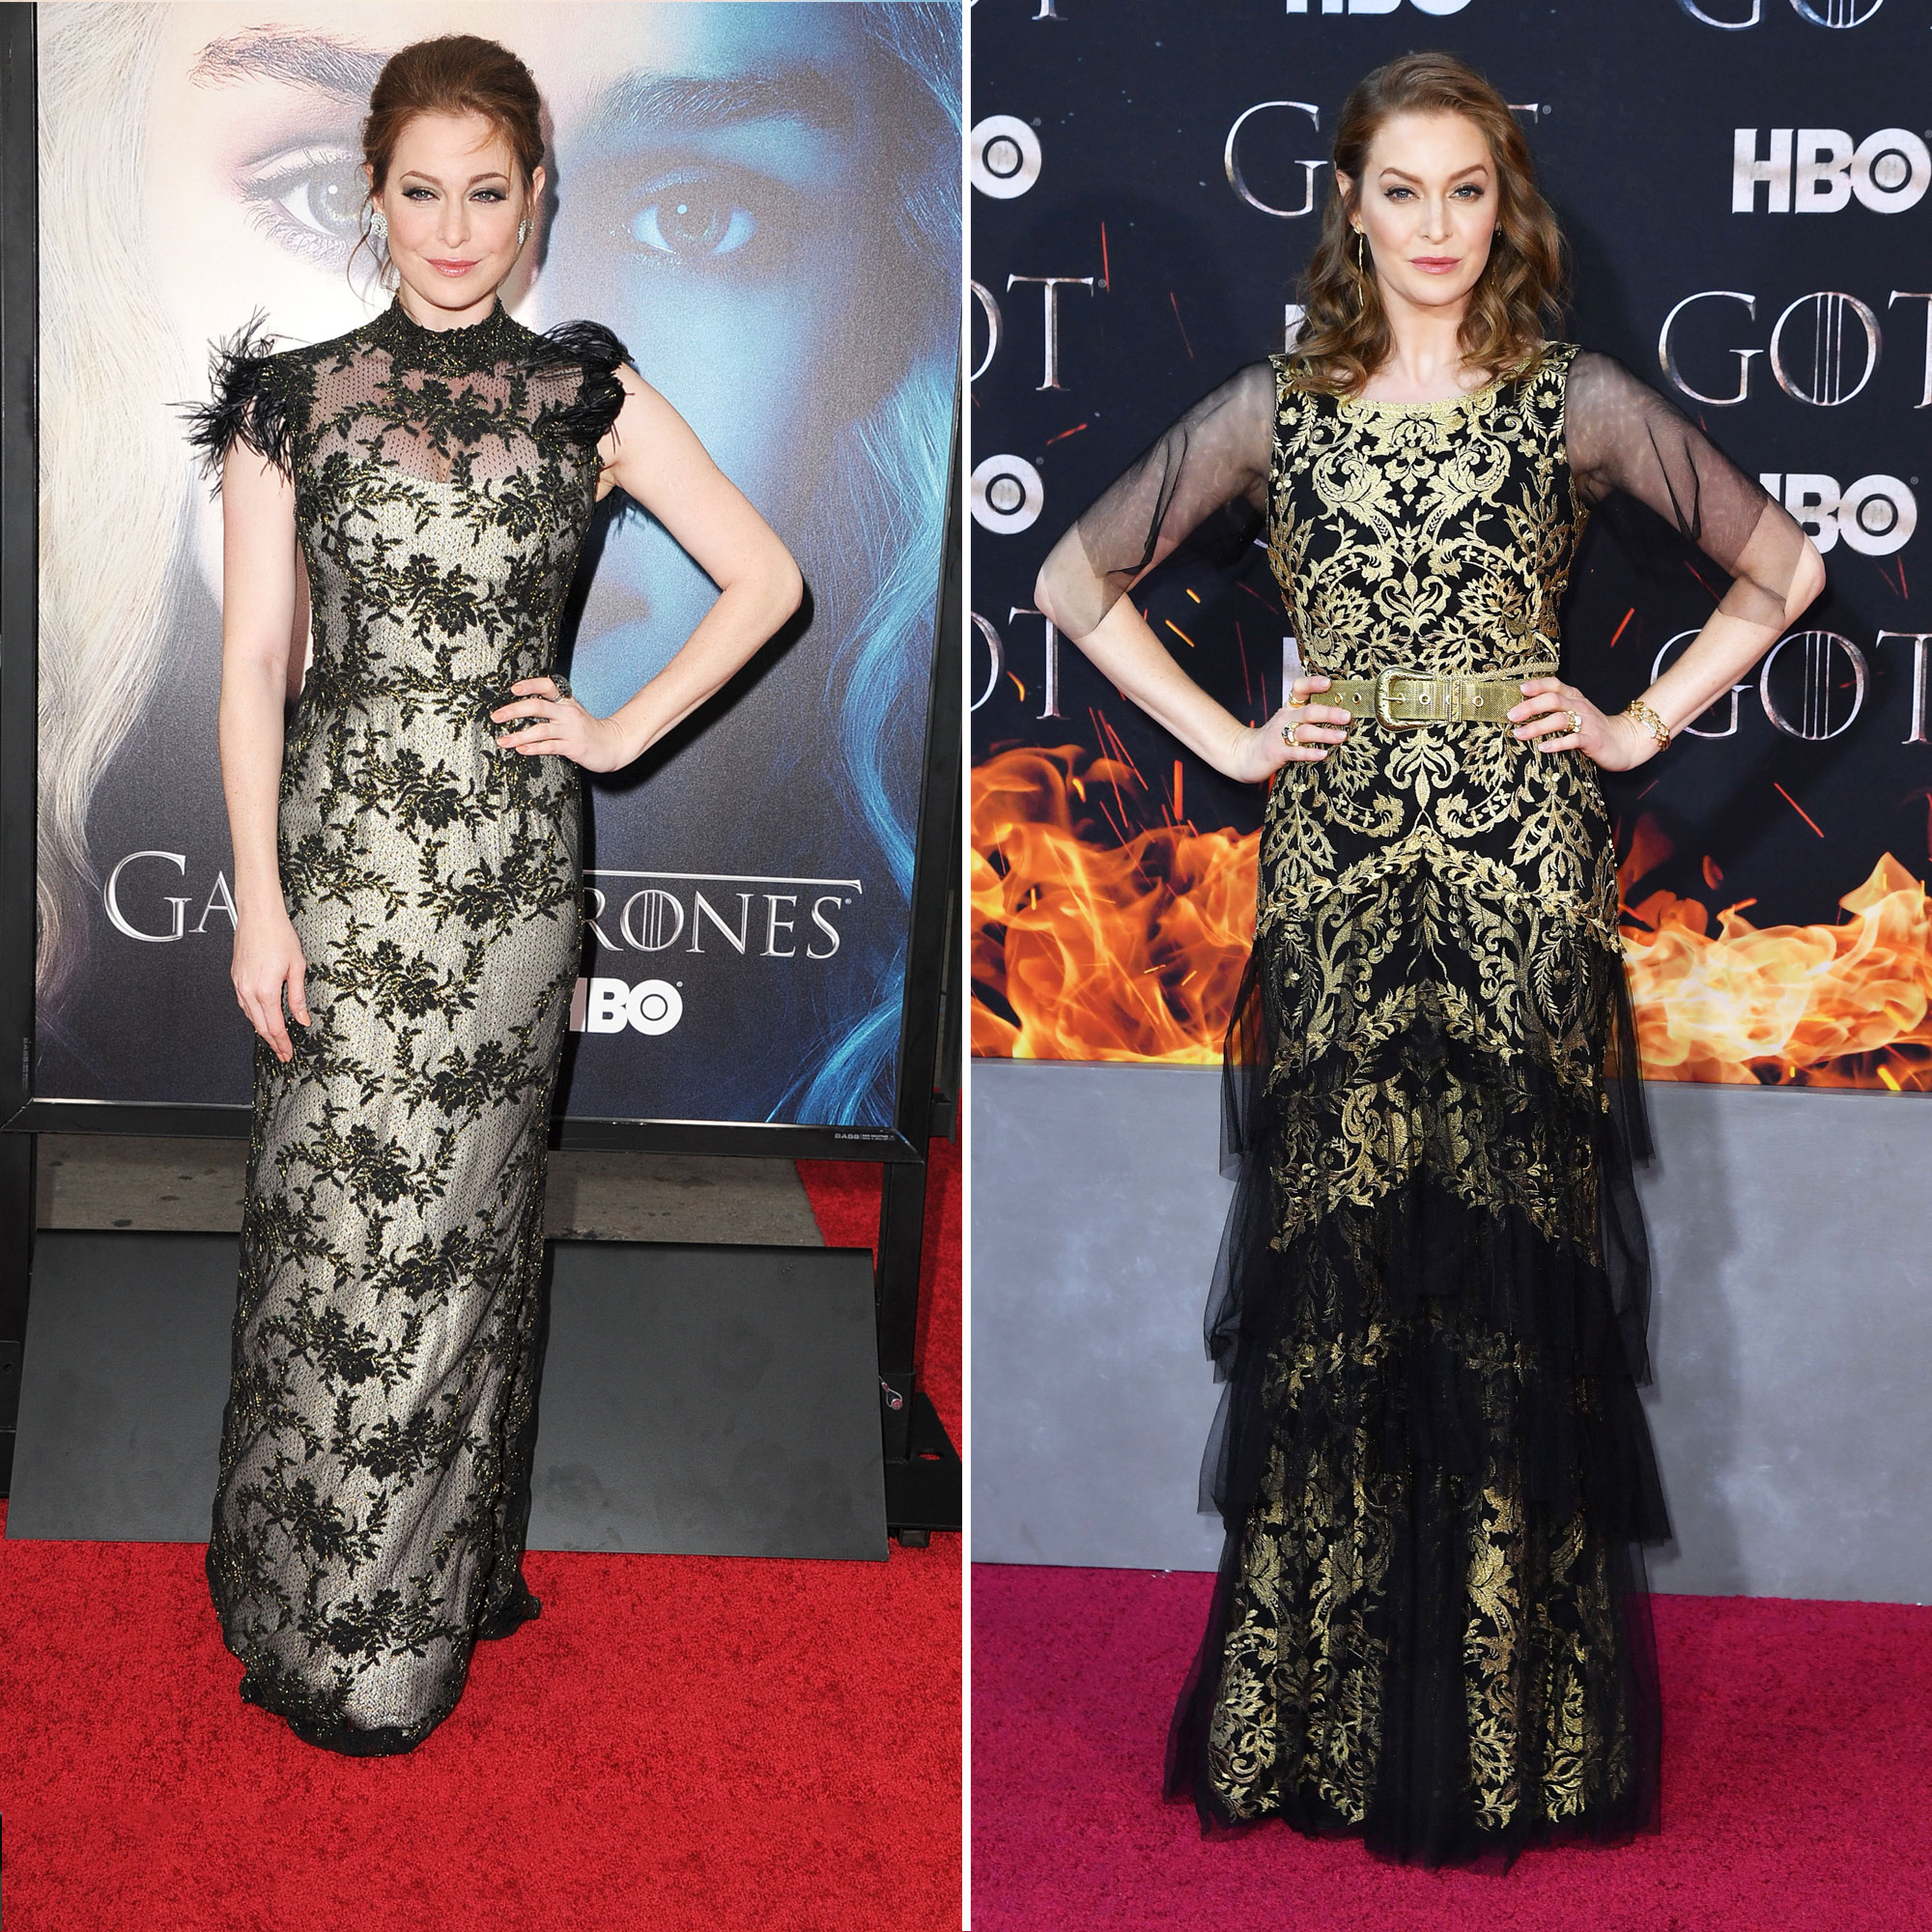 Esme Bianco 'Game of Thrones' Stars: From the First 'GoT' Red Carpet Premiere to the Last - Bianco's turn on the show ended in 2013 after Joffrey Baratheon ( Jack Gleeson ) shot her to death with a crossbow, but the actress has been doing just fine. The Magicians , Supergirl and Star vs. the Forces of Evil are just some of the TV shows she's gotten under her belt since Ros' demise.